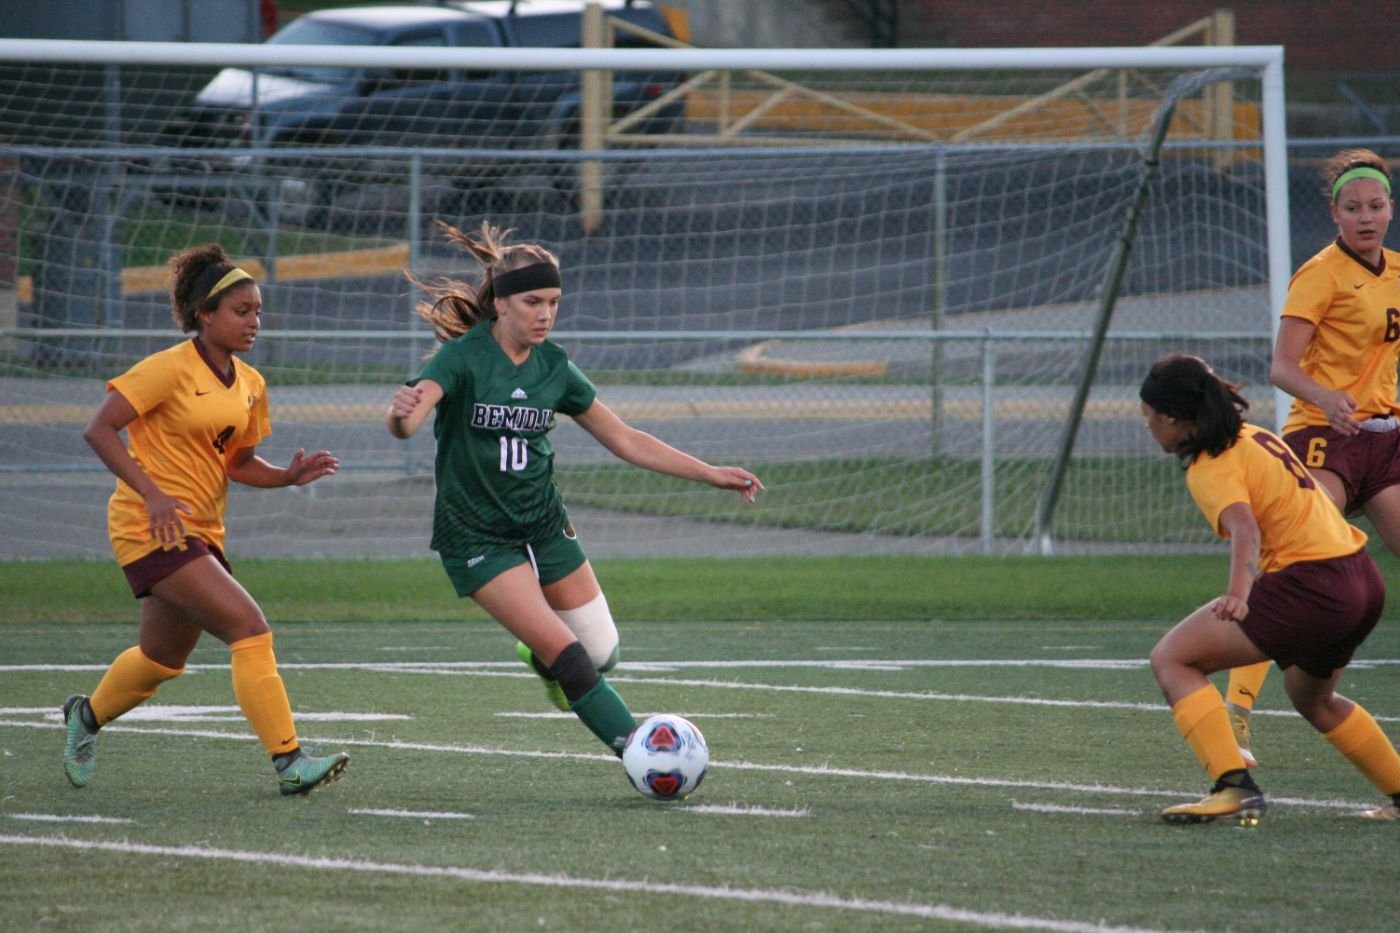 Bemidji State nets three goals to win NSIC opener over Minnesota Crookston